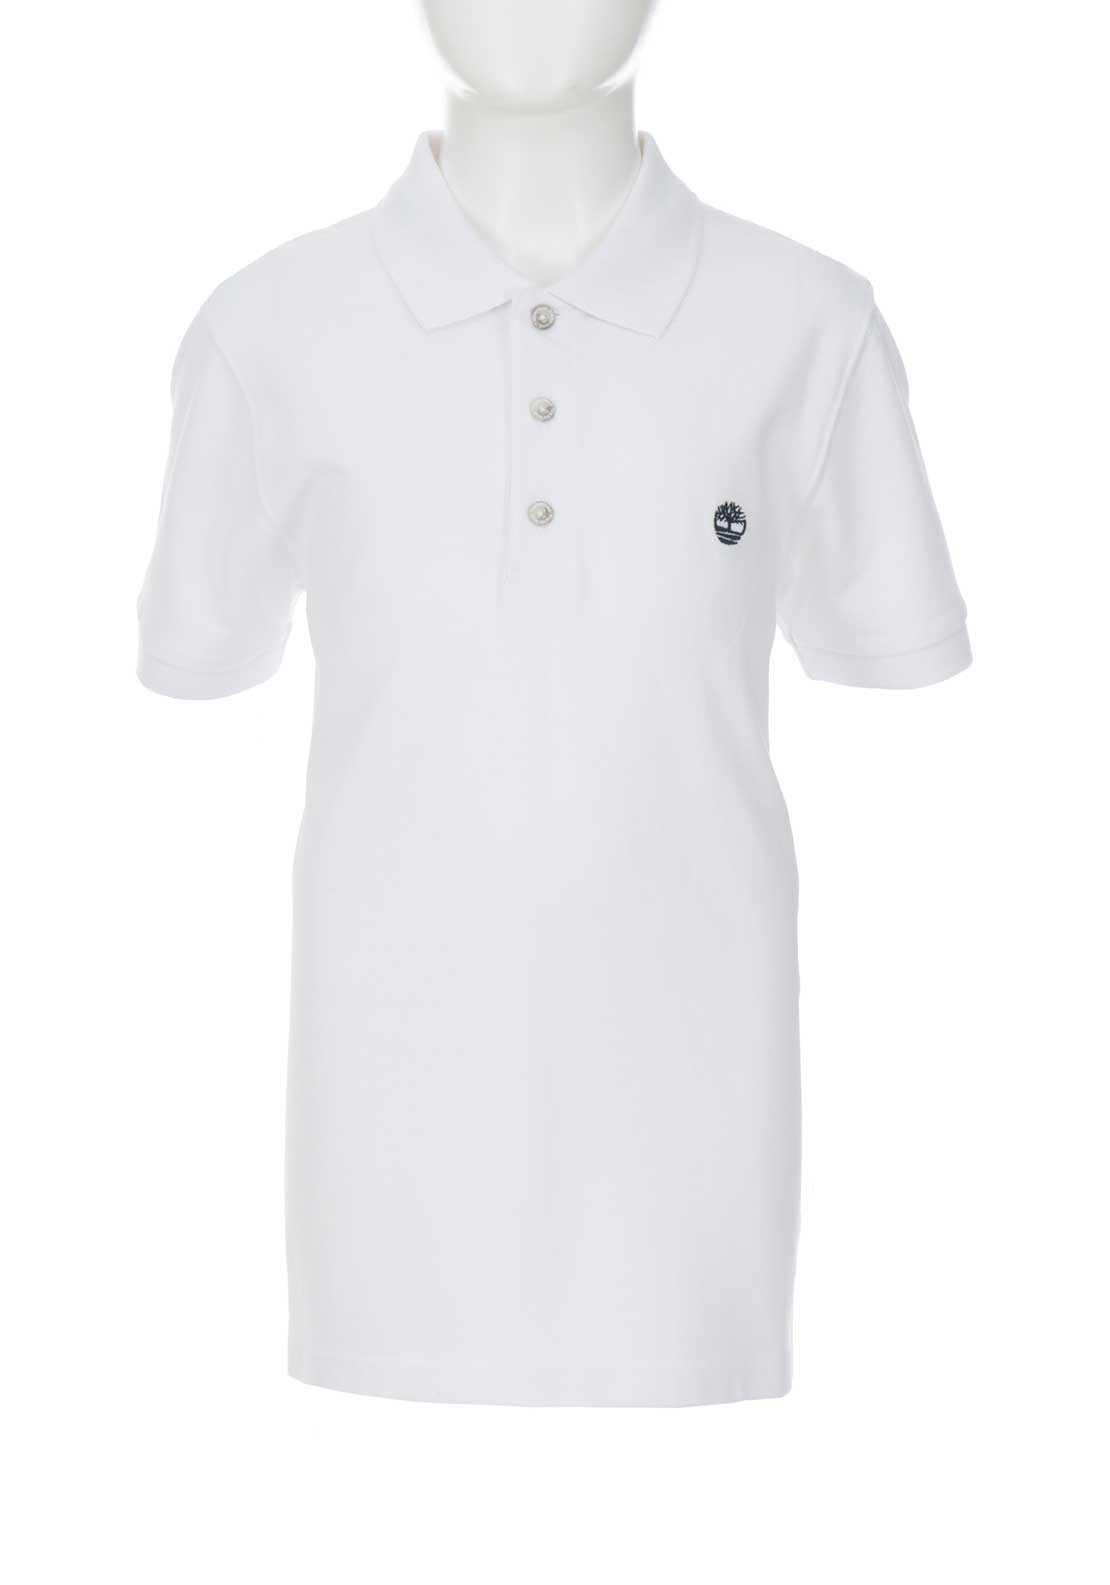 Timberland Boys Polo Shirt, White